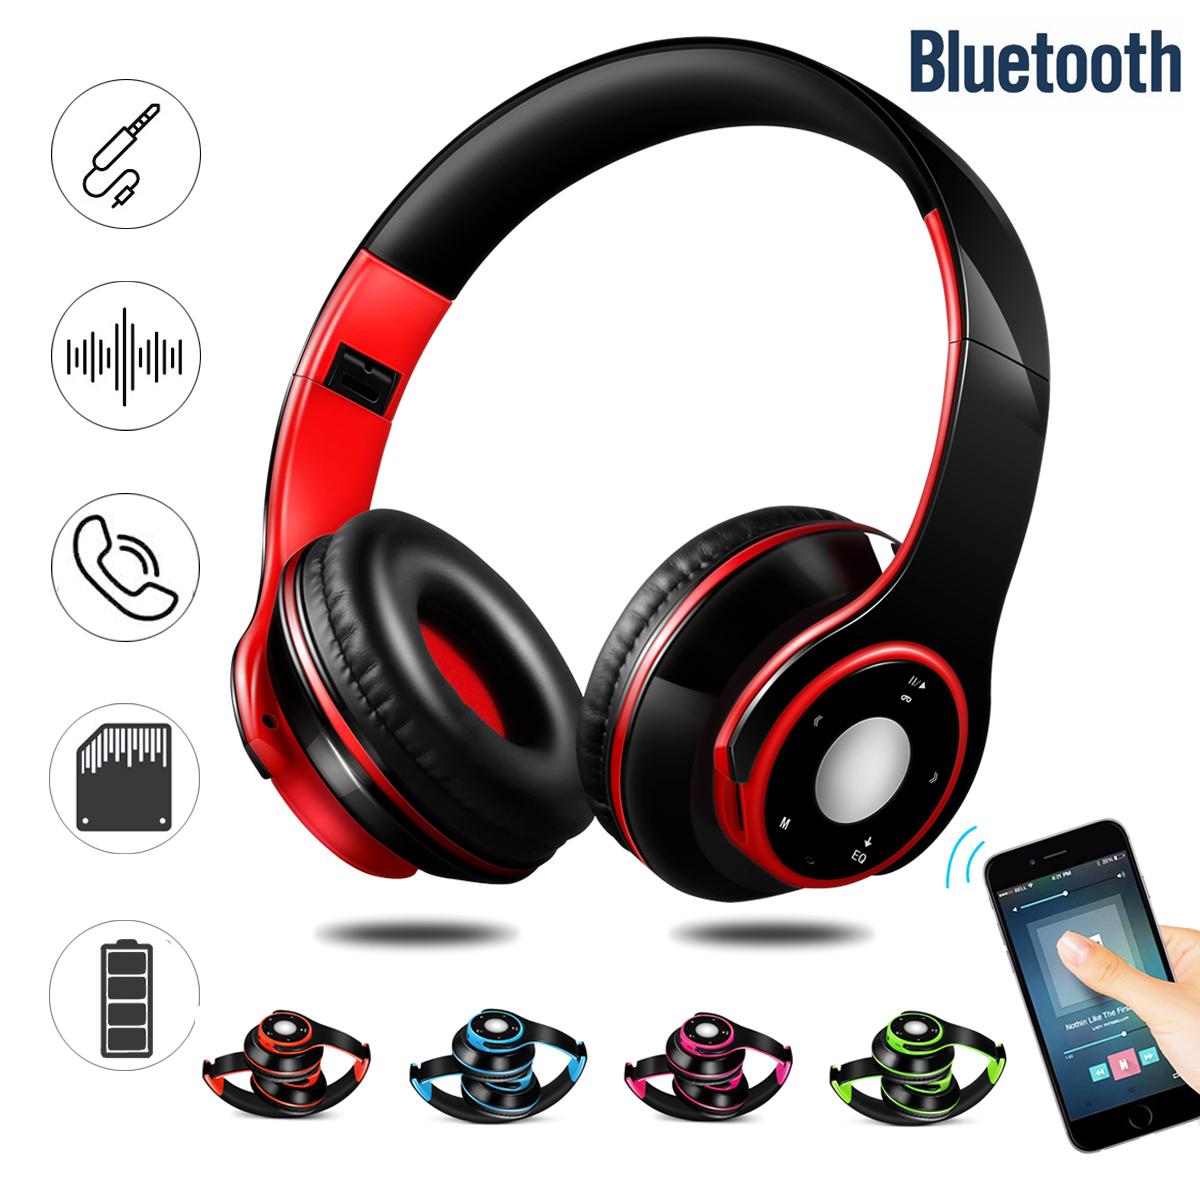 Portable Wireless Hifi Stereo Foldable Bluetooth Sports Headphone Headset Mic SD AUX